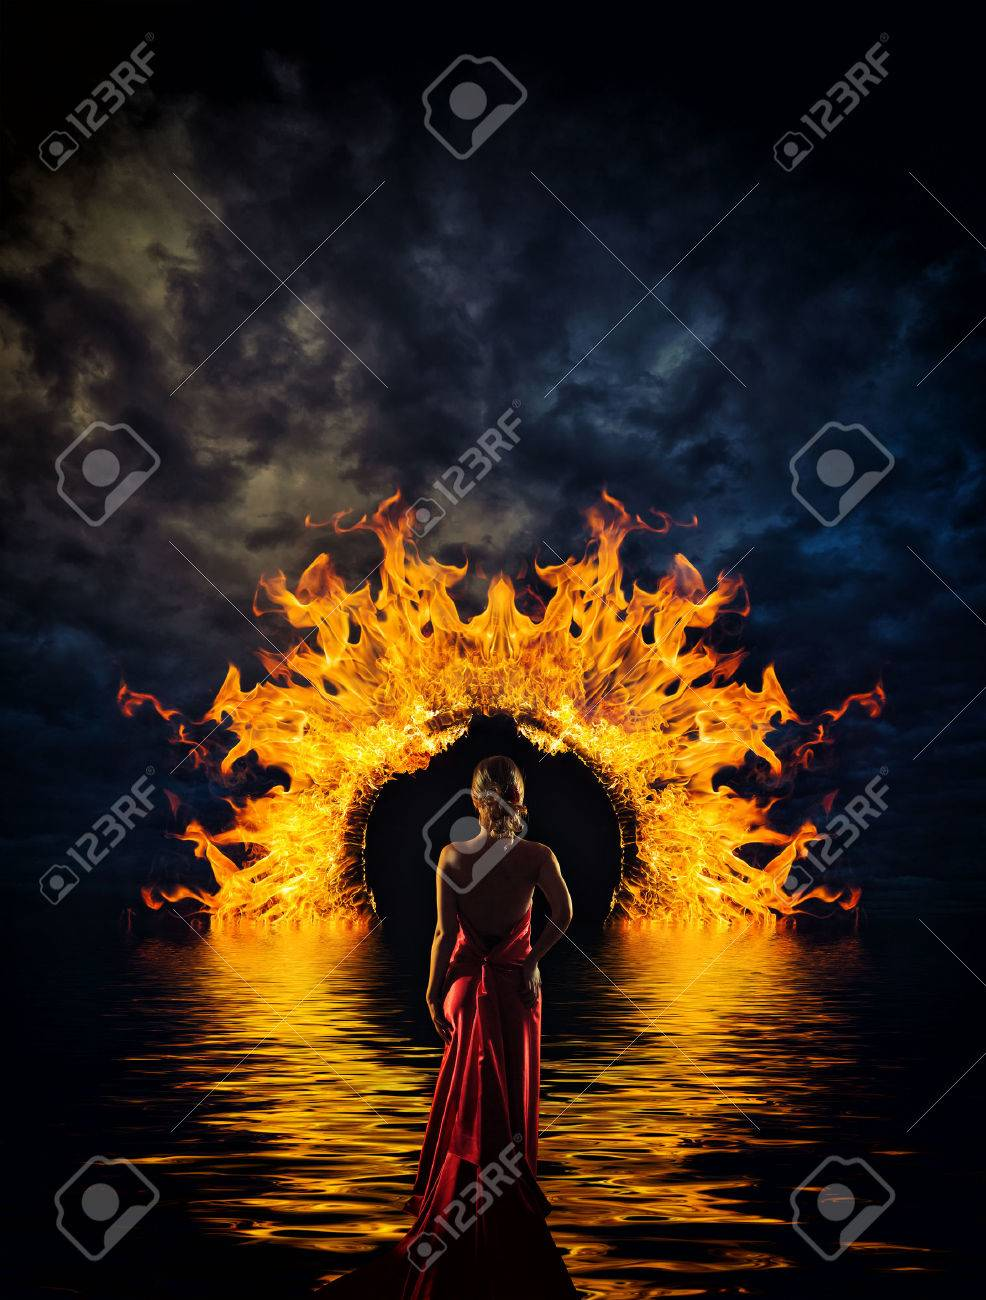 Woman at hell\u0027s door dramatic background Stock Photo - 24925790 & Woman At Hell\u0027s Door Dramatic Background Stock Photo Picture And ...